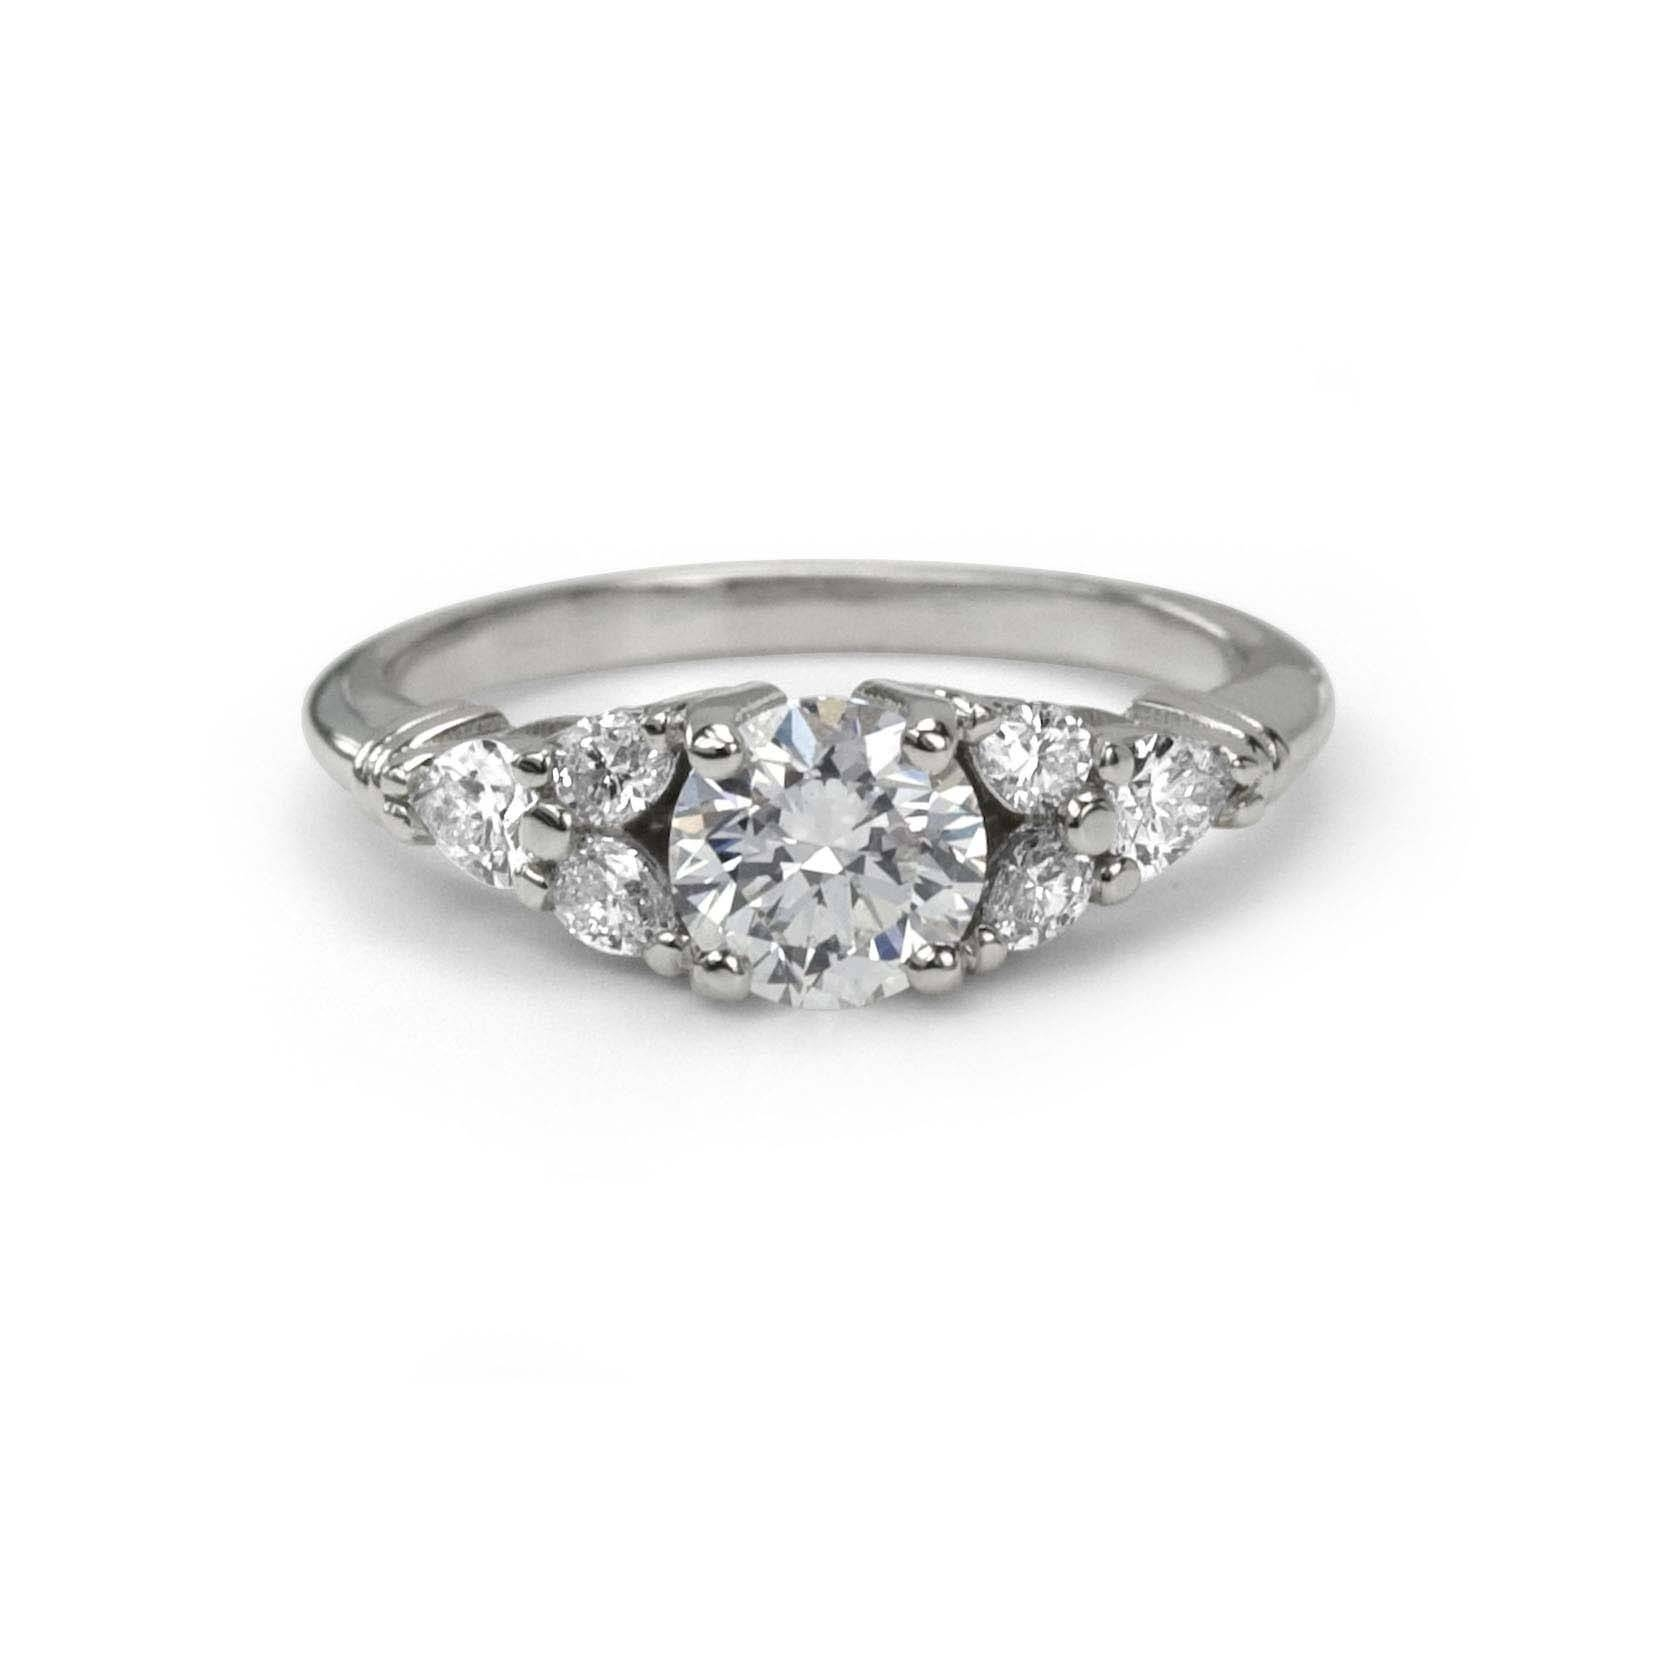 Vintage Inspired Engagement Rings | Antique | Studio1098 Toronto Inside Antique Inspired Wedding Rings (View 11 of 15)